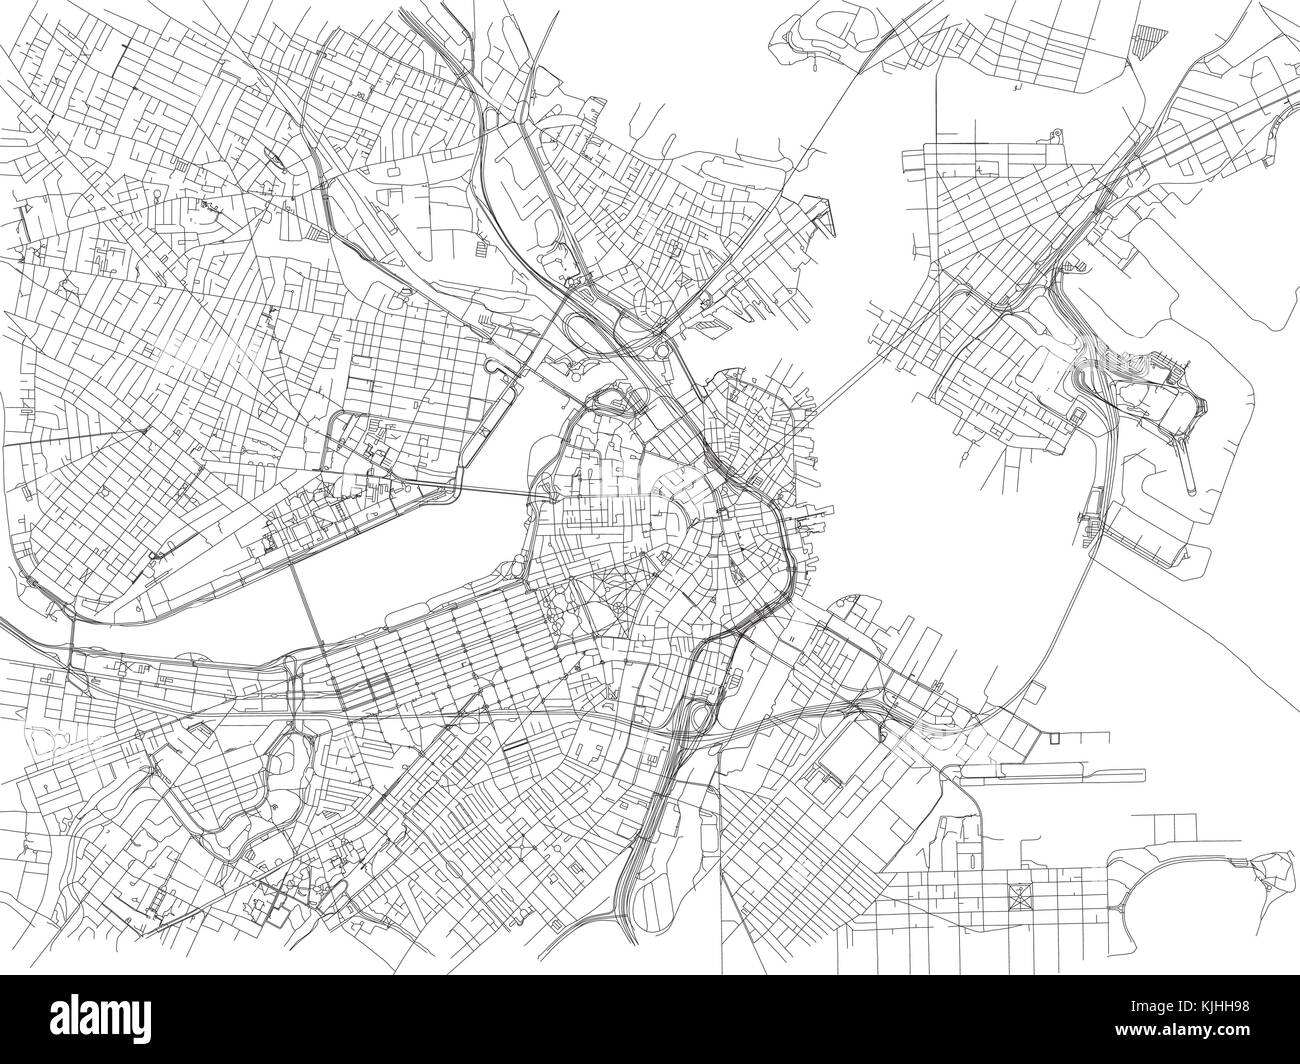 Streets of Boston city map Massachusetts United States Street